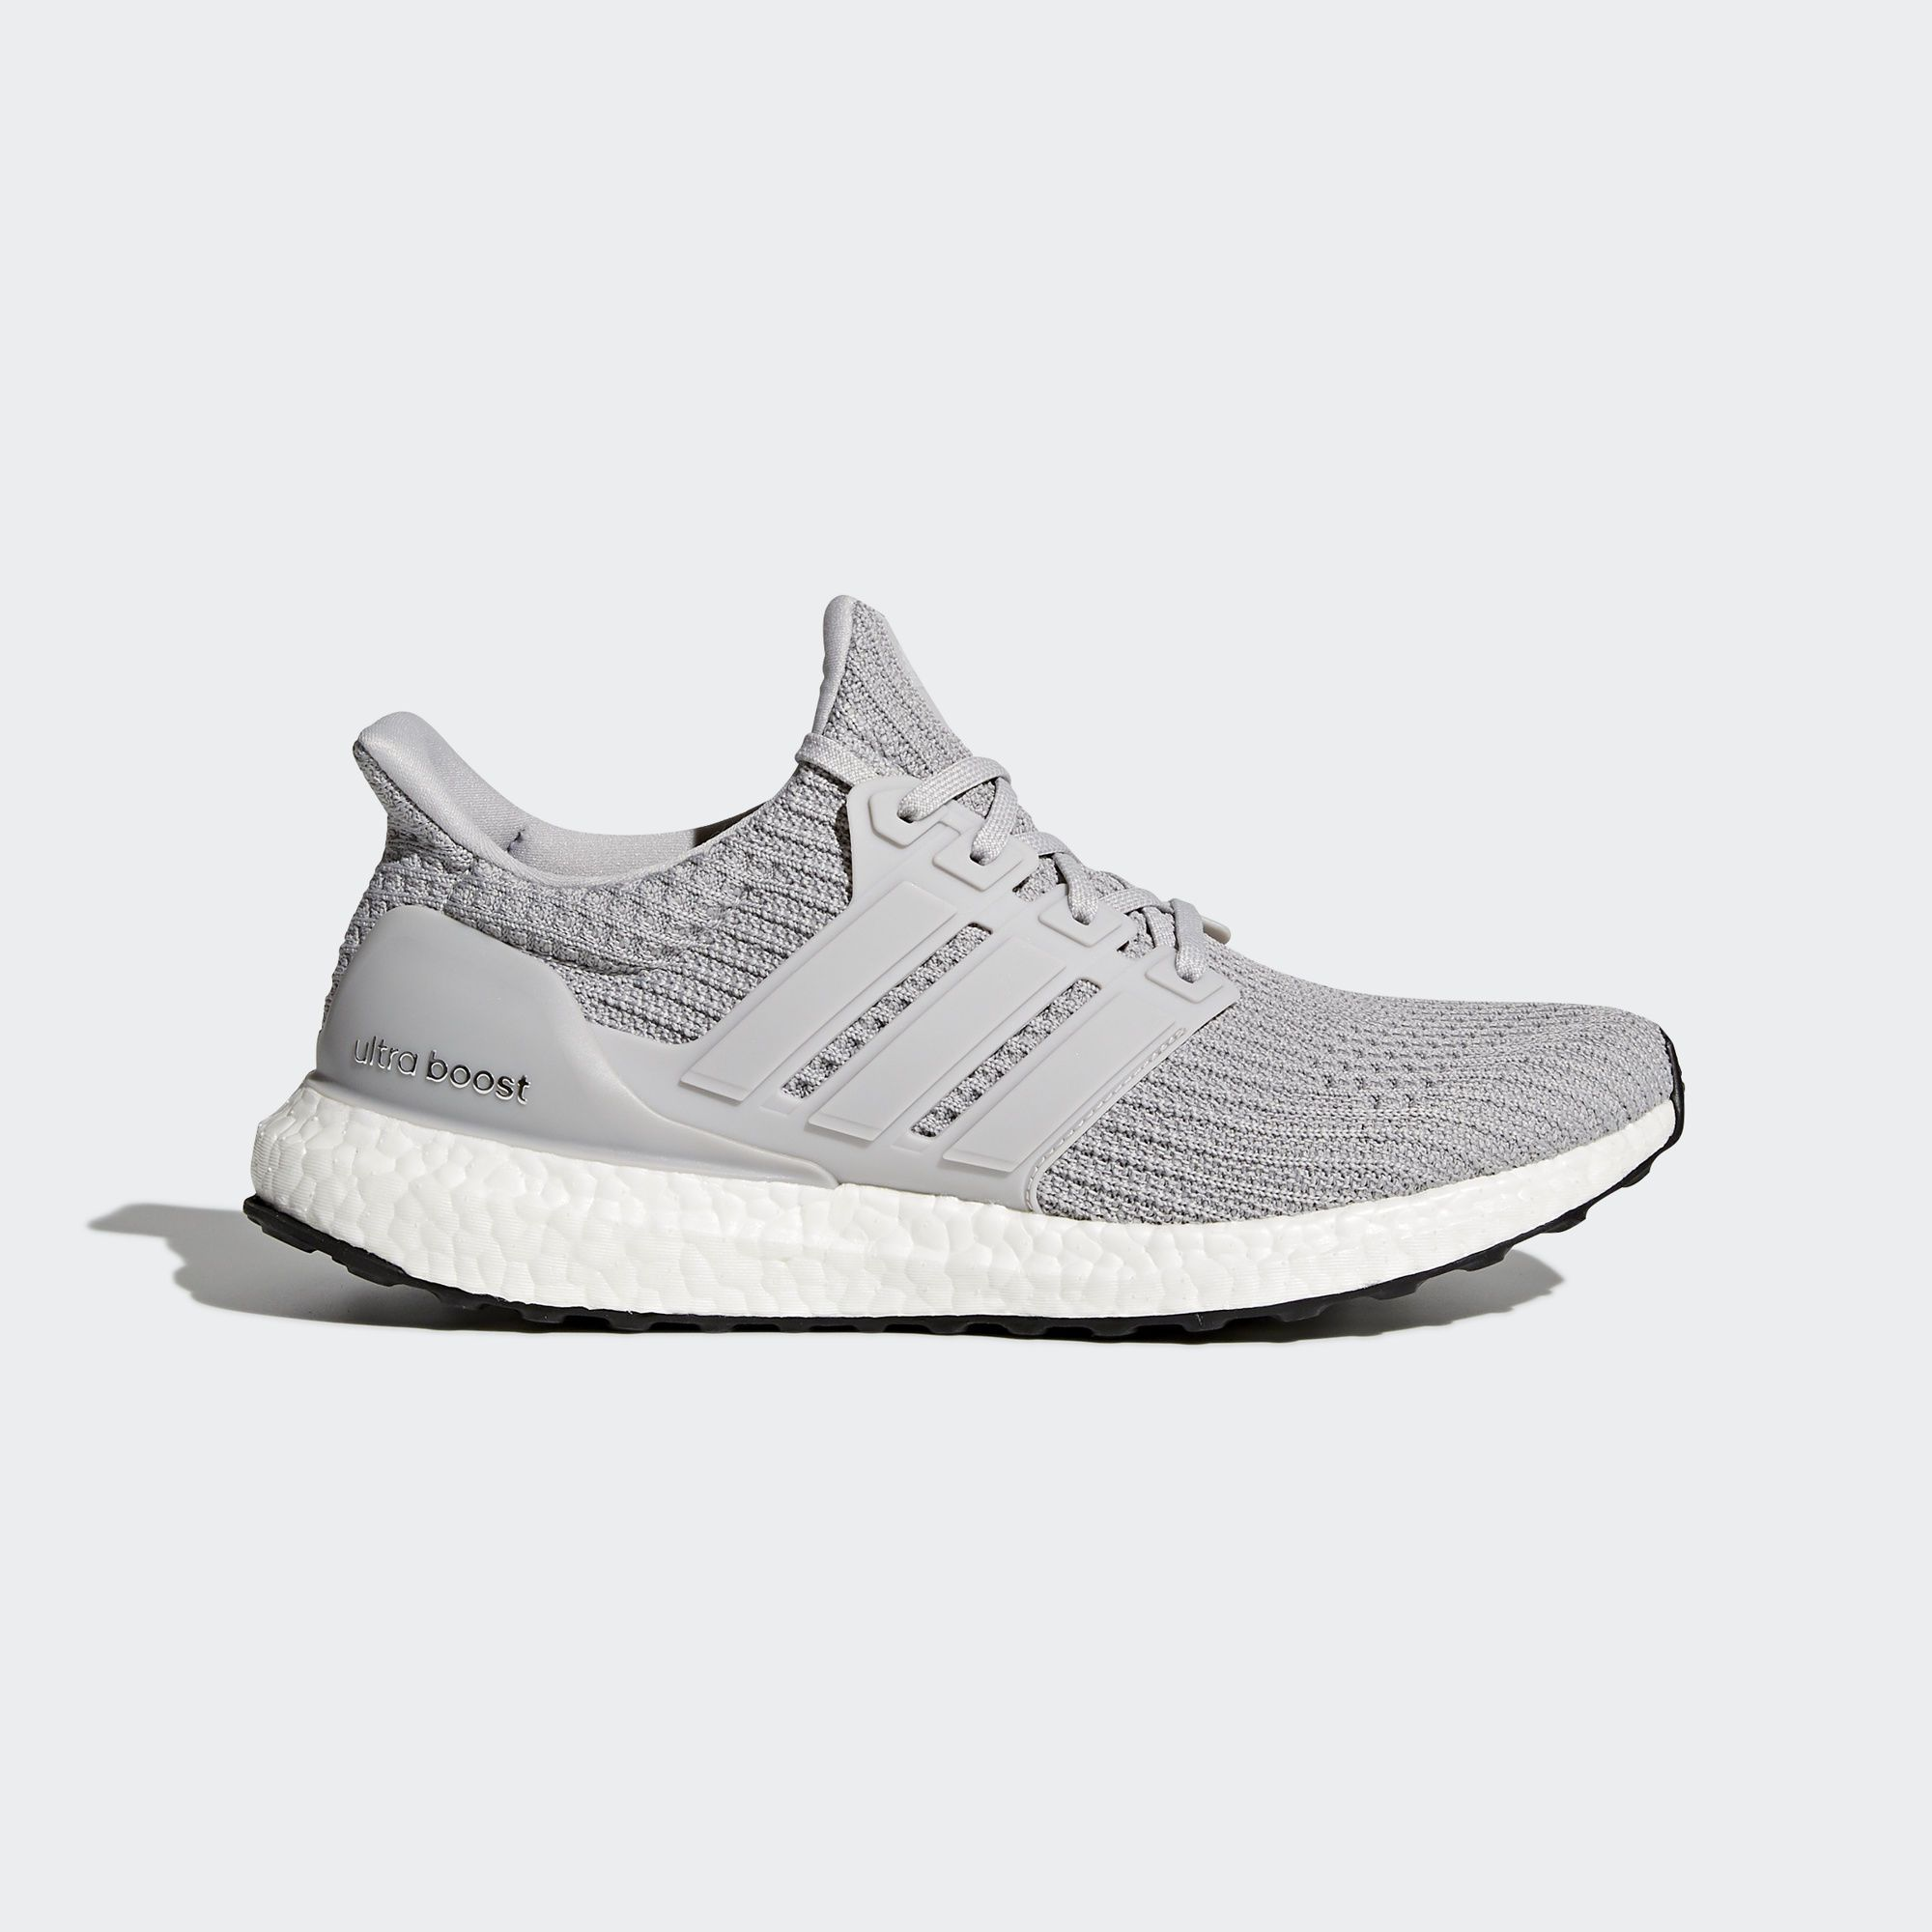 Adidas Ultra Boost Wolf Grey White trainers for cheap Sale